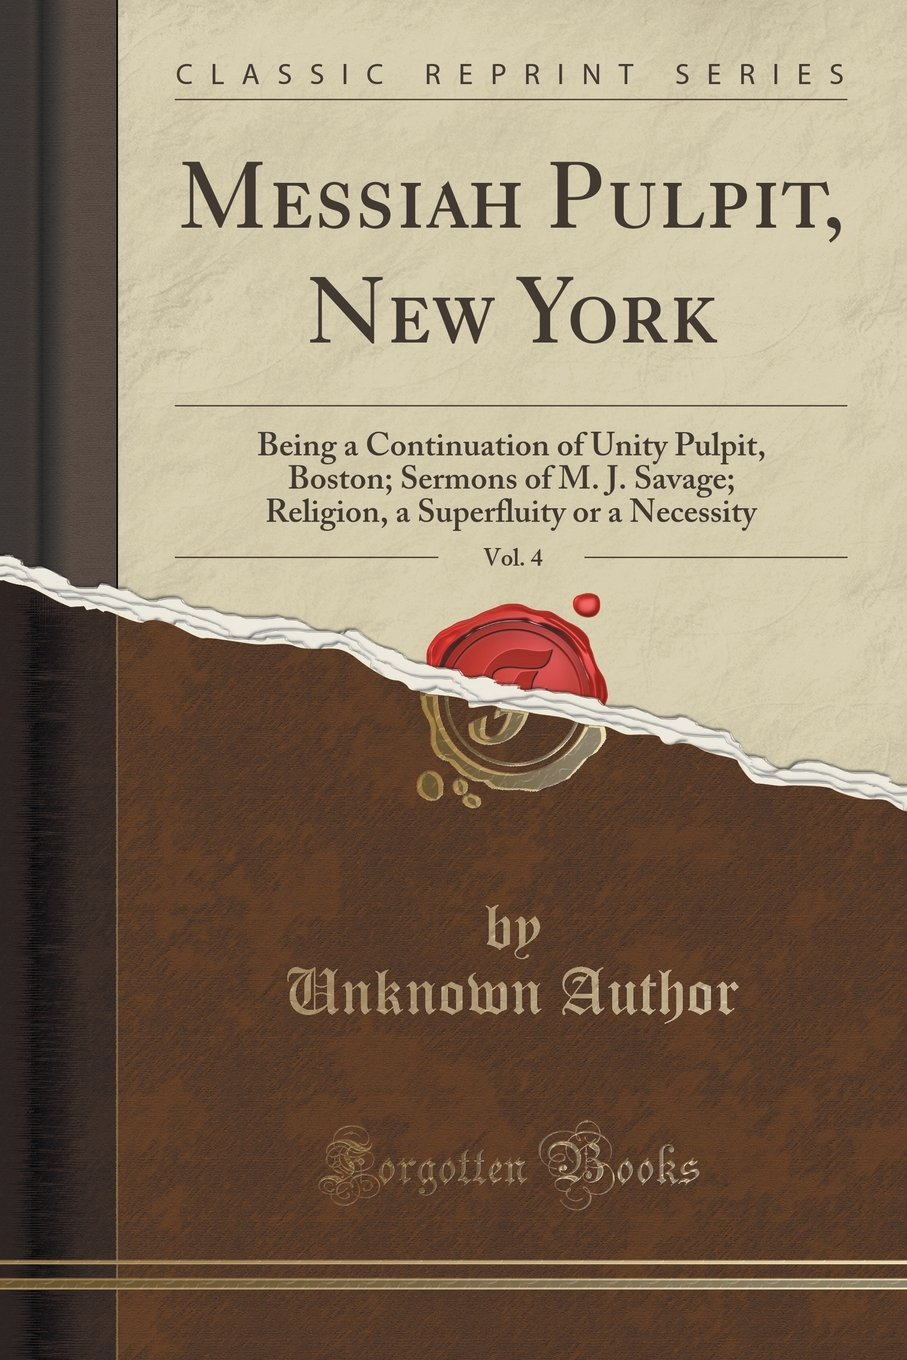 Download Messiah Pulpit, New York, Vol. 4: Being a Continuation of Unity Pulpit, Boston; Sermons of M. J. Savage; Religion, a Superfluity or a Necessity (Classic Reprint) PDF